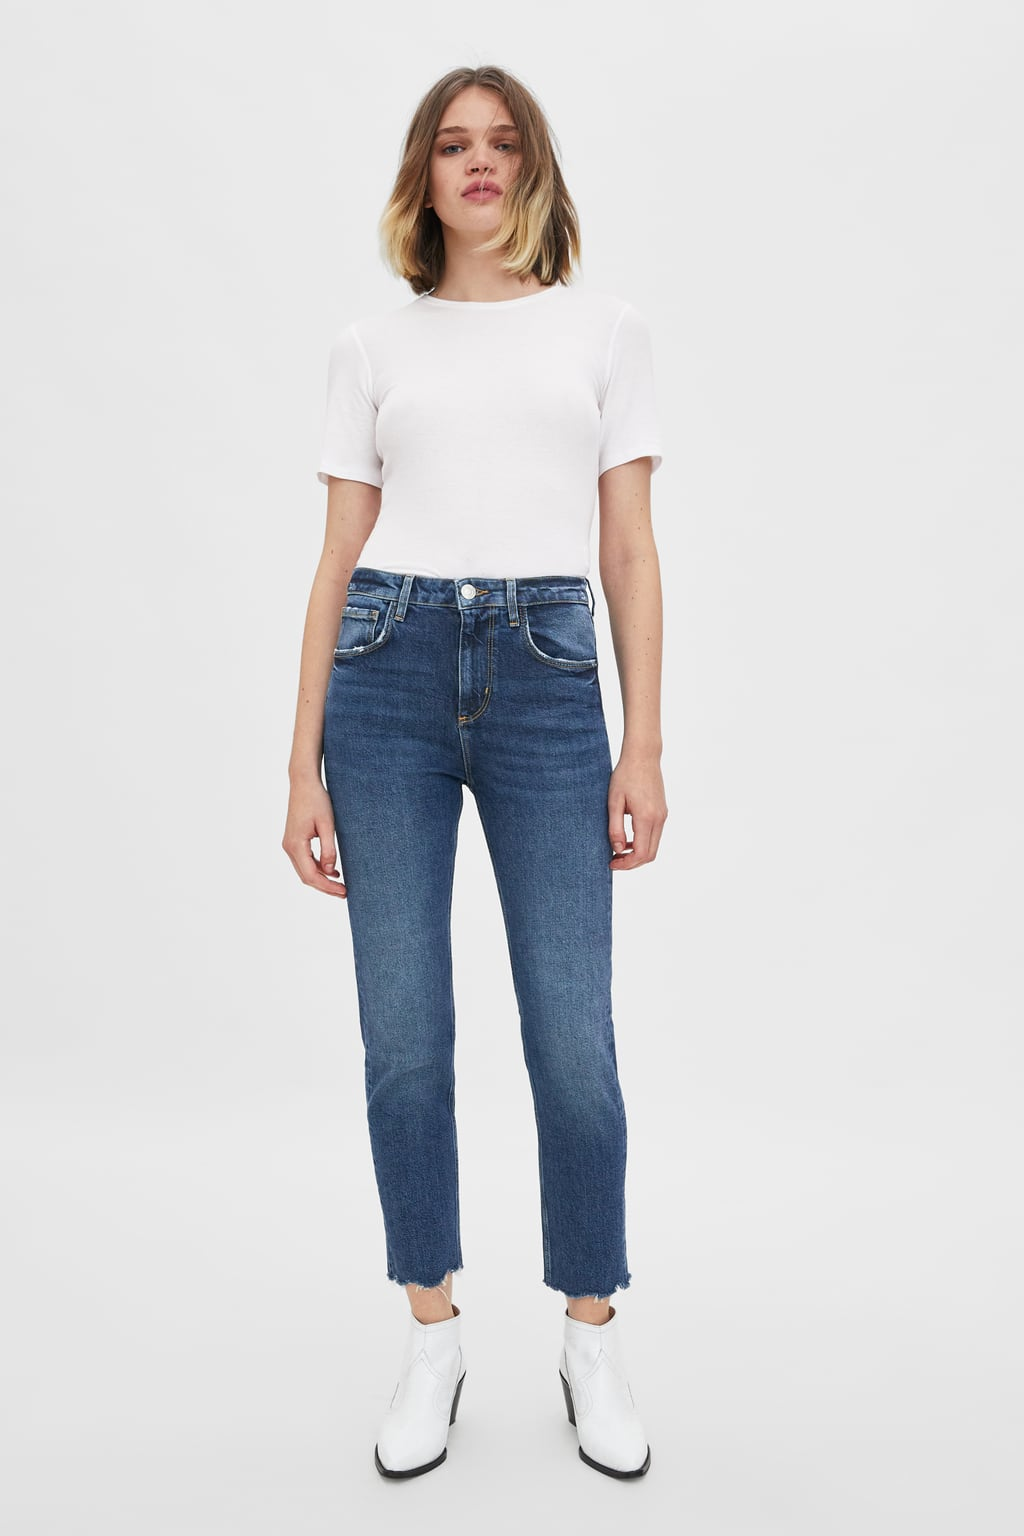 f44b3ff0 Image 1 of HI-RISE SLIM FIT JEANS from Zara ...